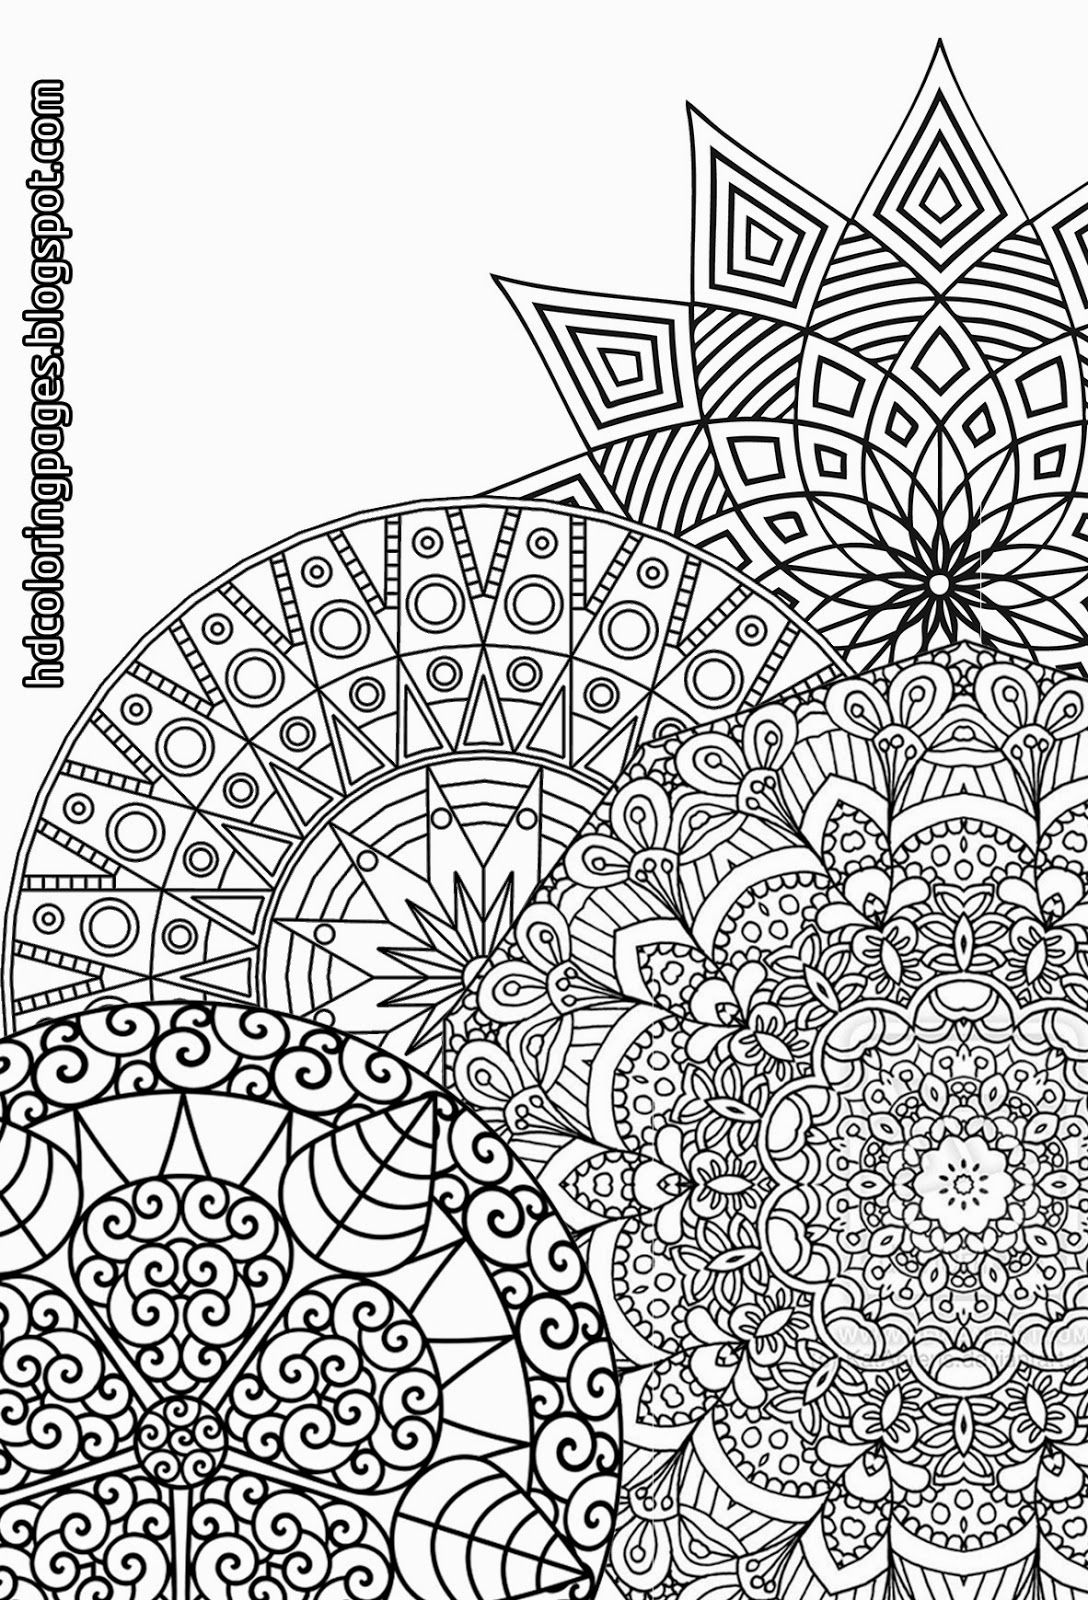 Super Detailed Mandalas - Coloring Pages for Adult ...Detailed Mandala Coloring Pages For Adults